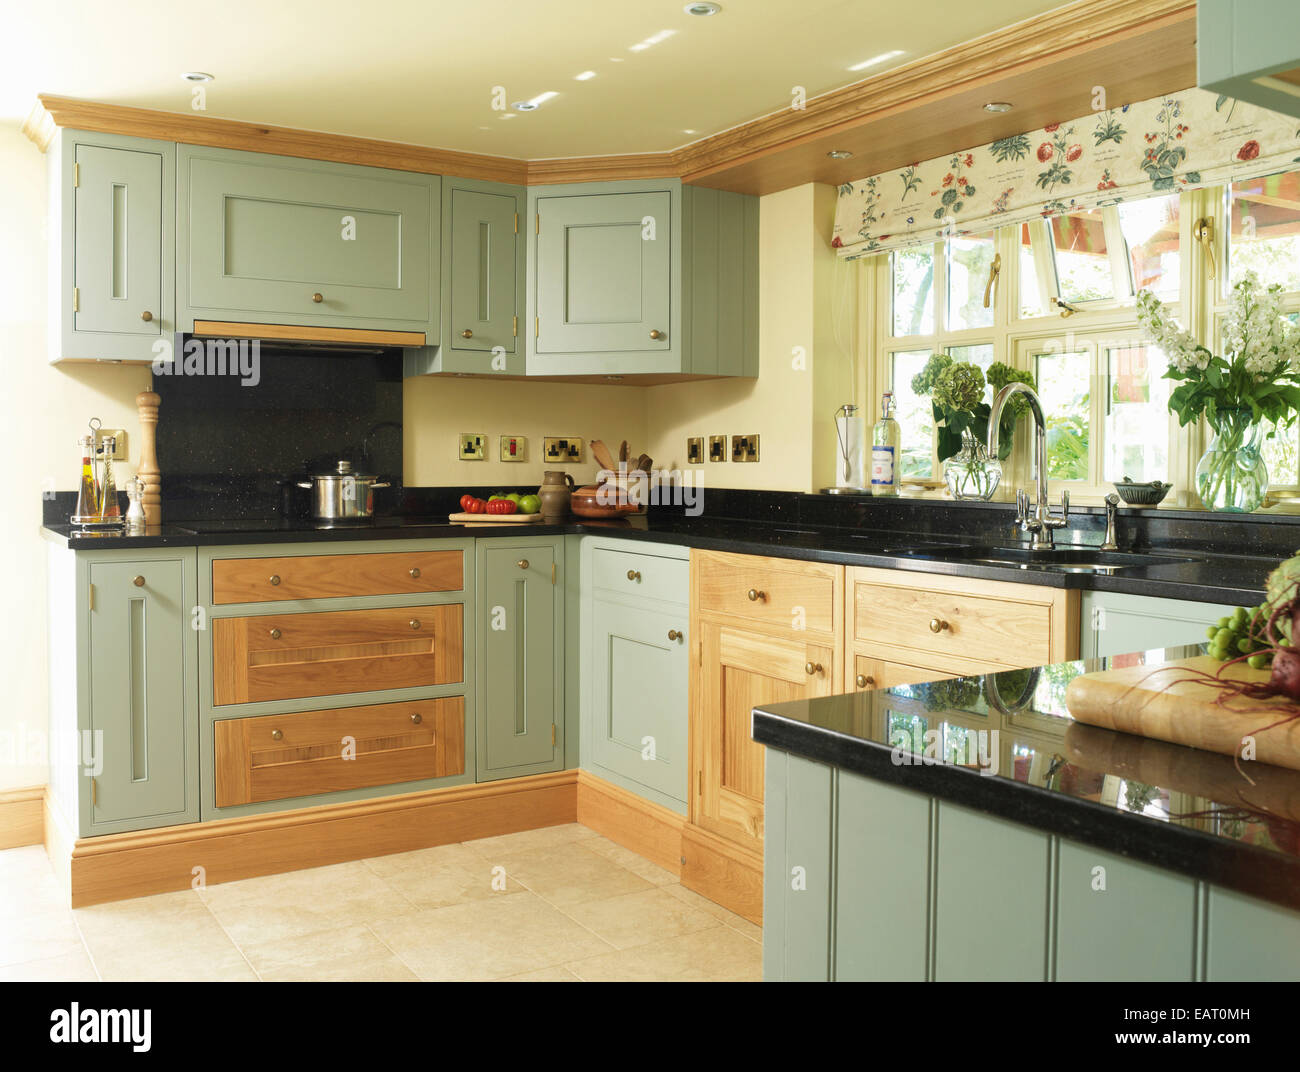 Country Style Kitchens Images Country Style Kitchen With Green Fitted Units Stock Photo